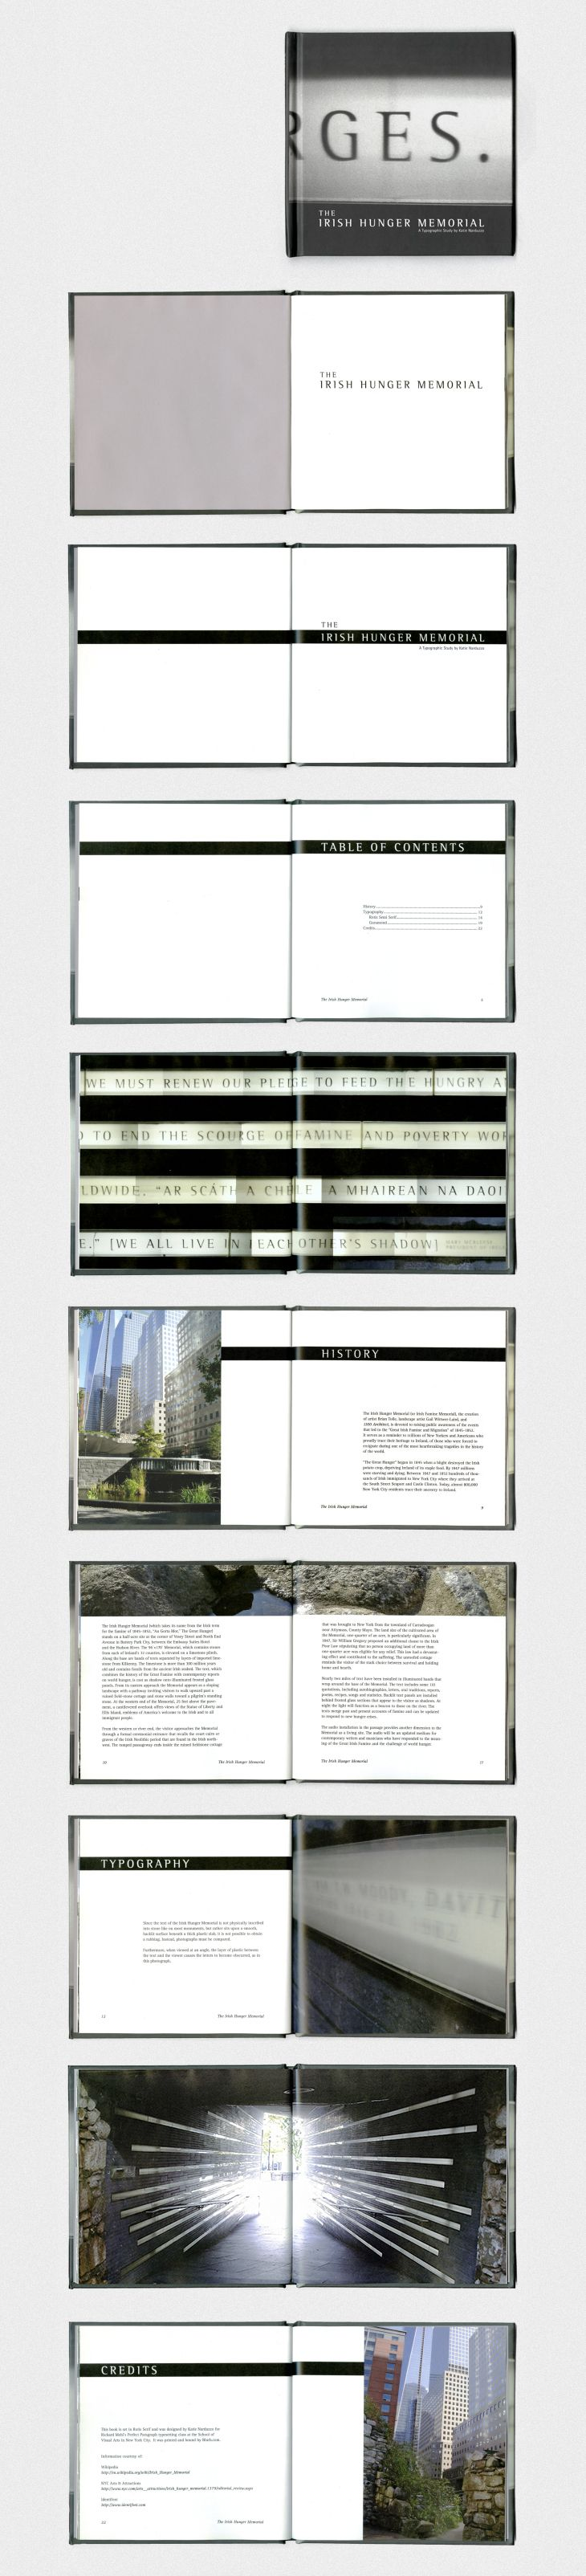 The Irish Hunger Memorial — A 22-page typographic exploration and brief history of the monument that commemorates the Irish Potato Famine in Lower Manhattan.